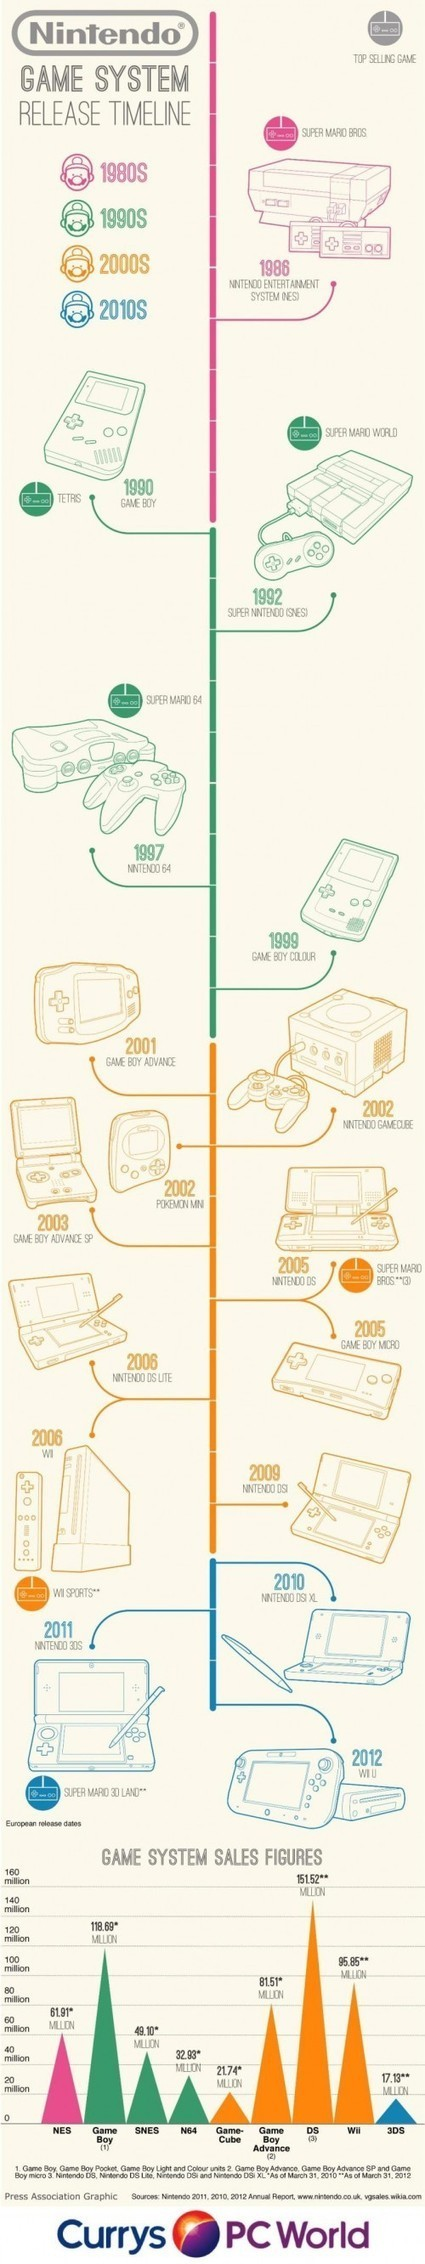 Nintendo Game System Release Timeline – Infographic | AP Psych | Scoop.it